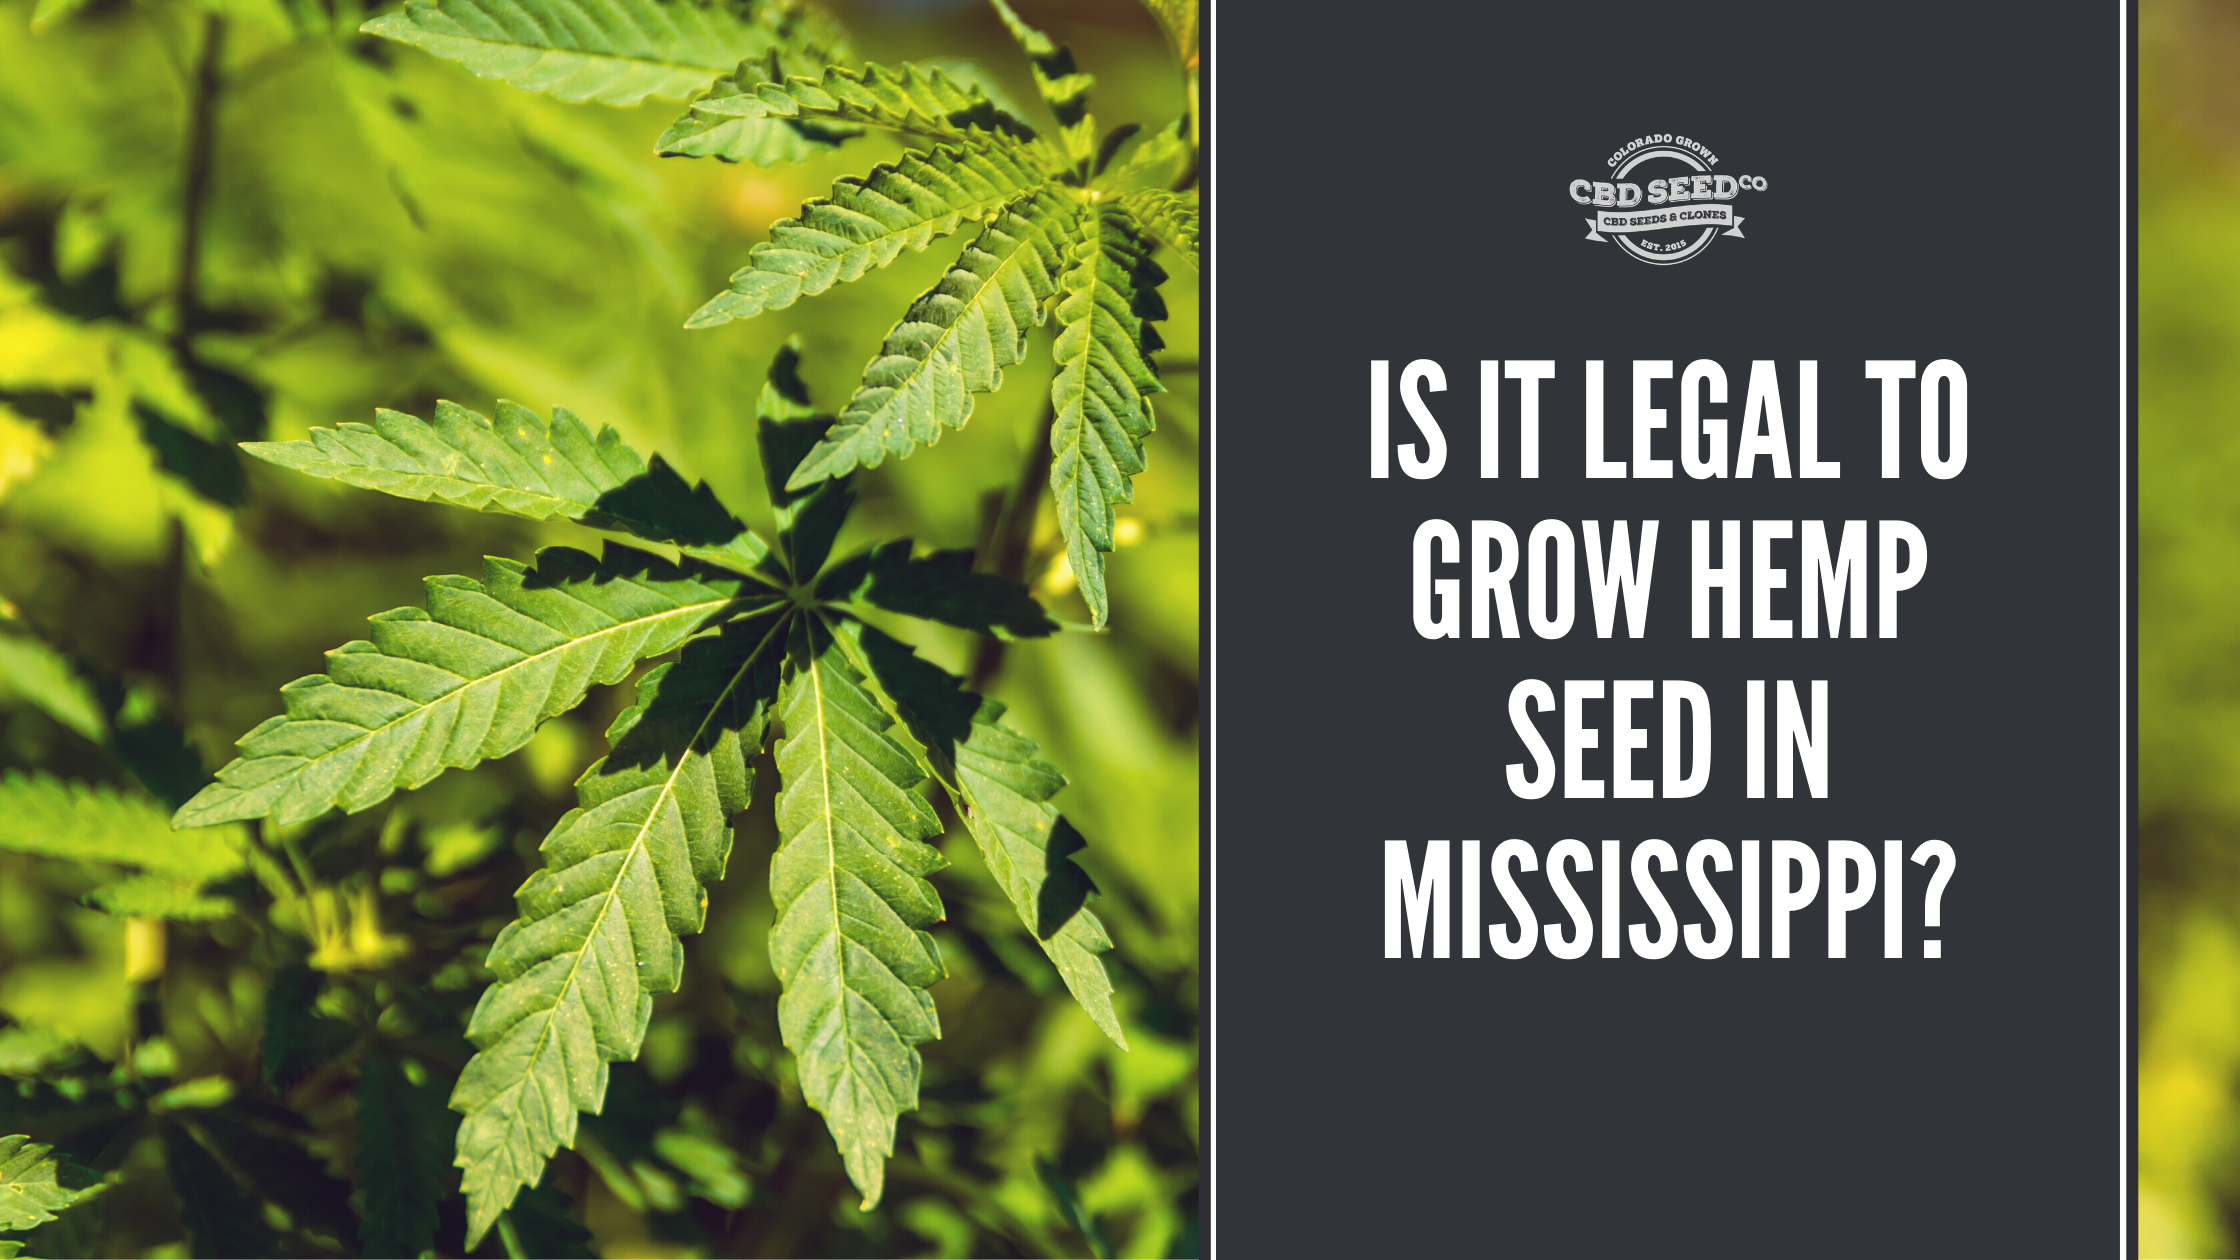 Is It Legal To Grow Hemp Seed In Mississippi Cbd Seed Co